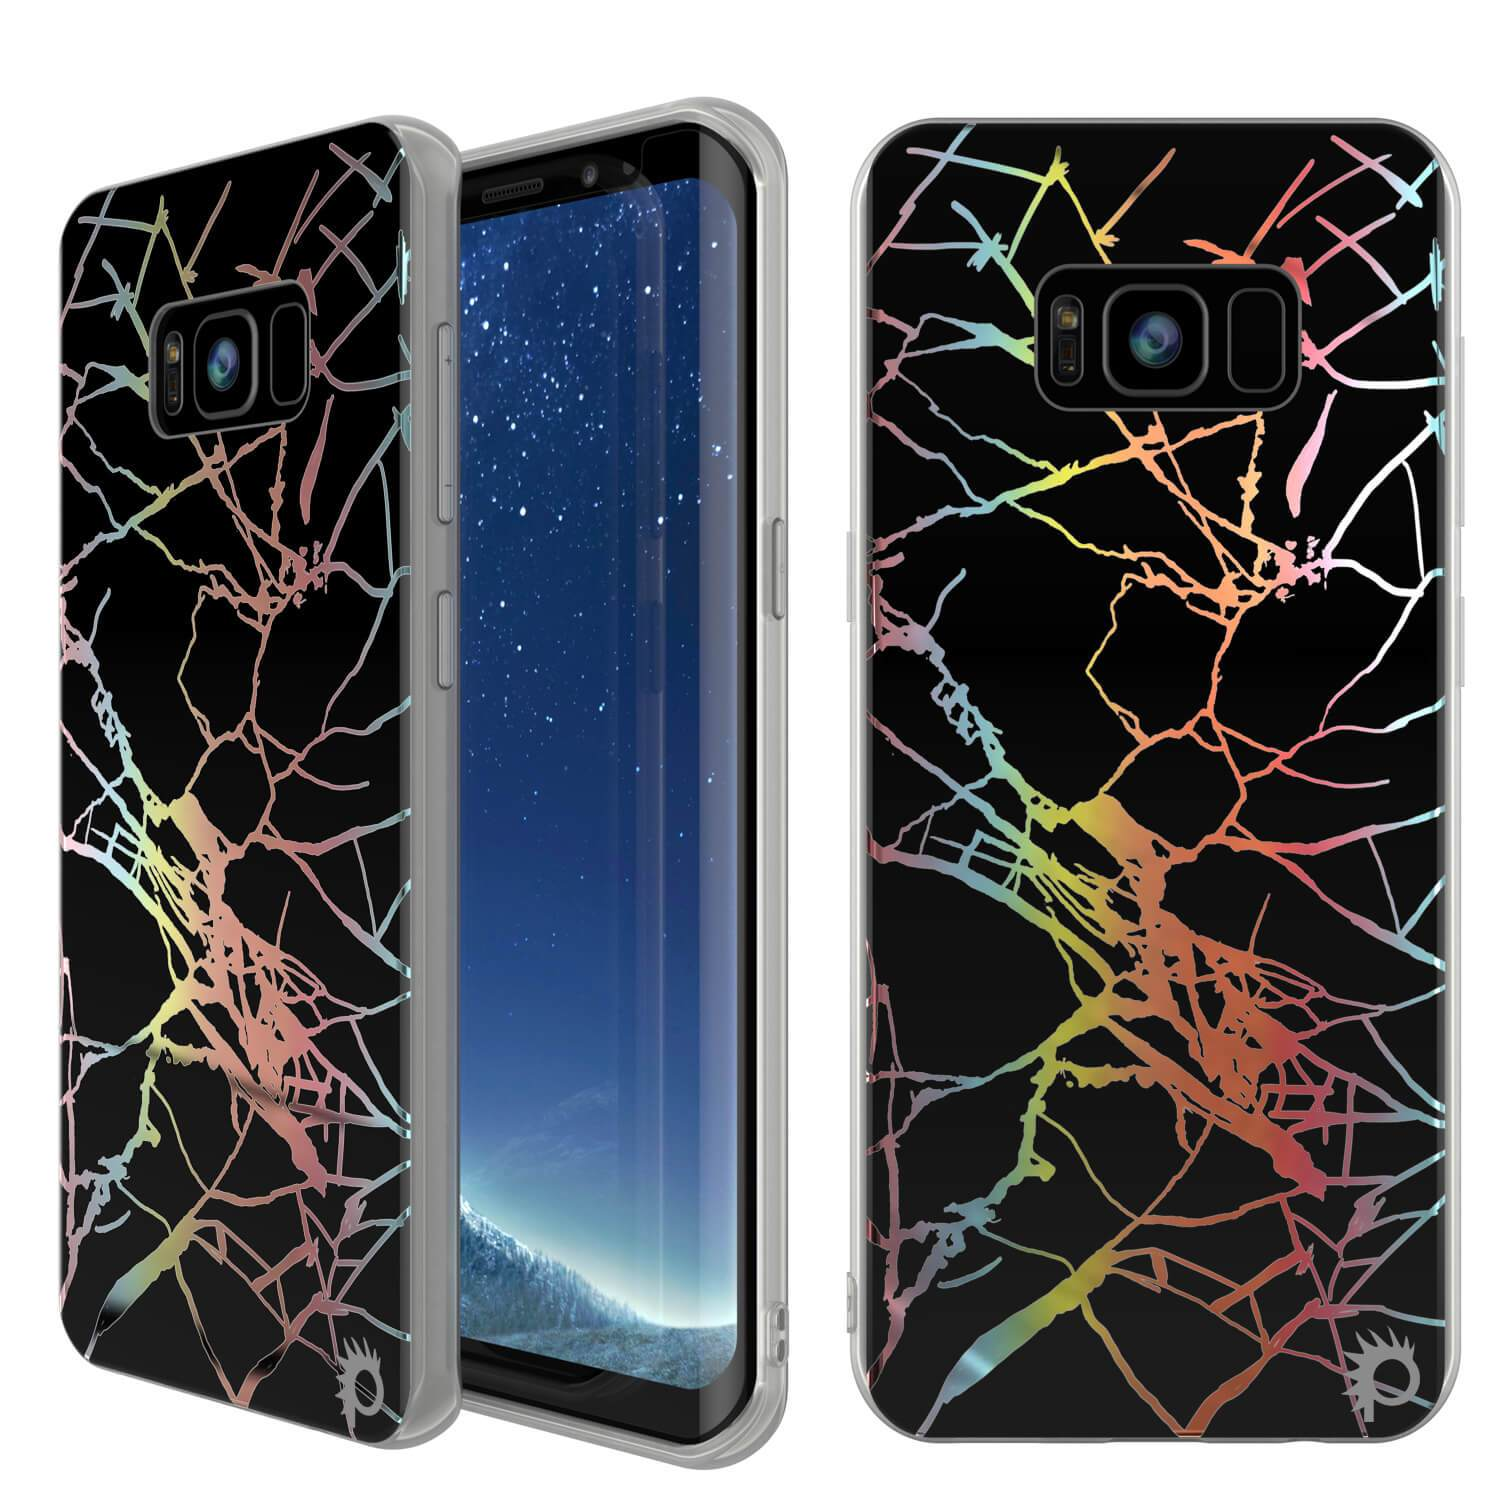 Galaxy S8 Plus Marble Case, Protective Full Body Cover[Black Mirage]